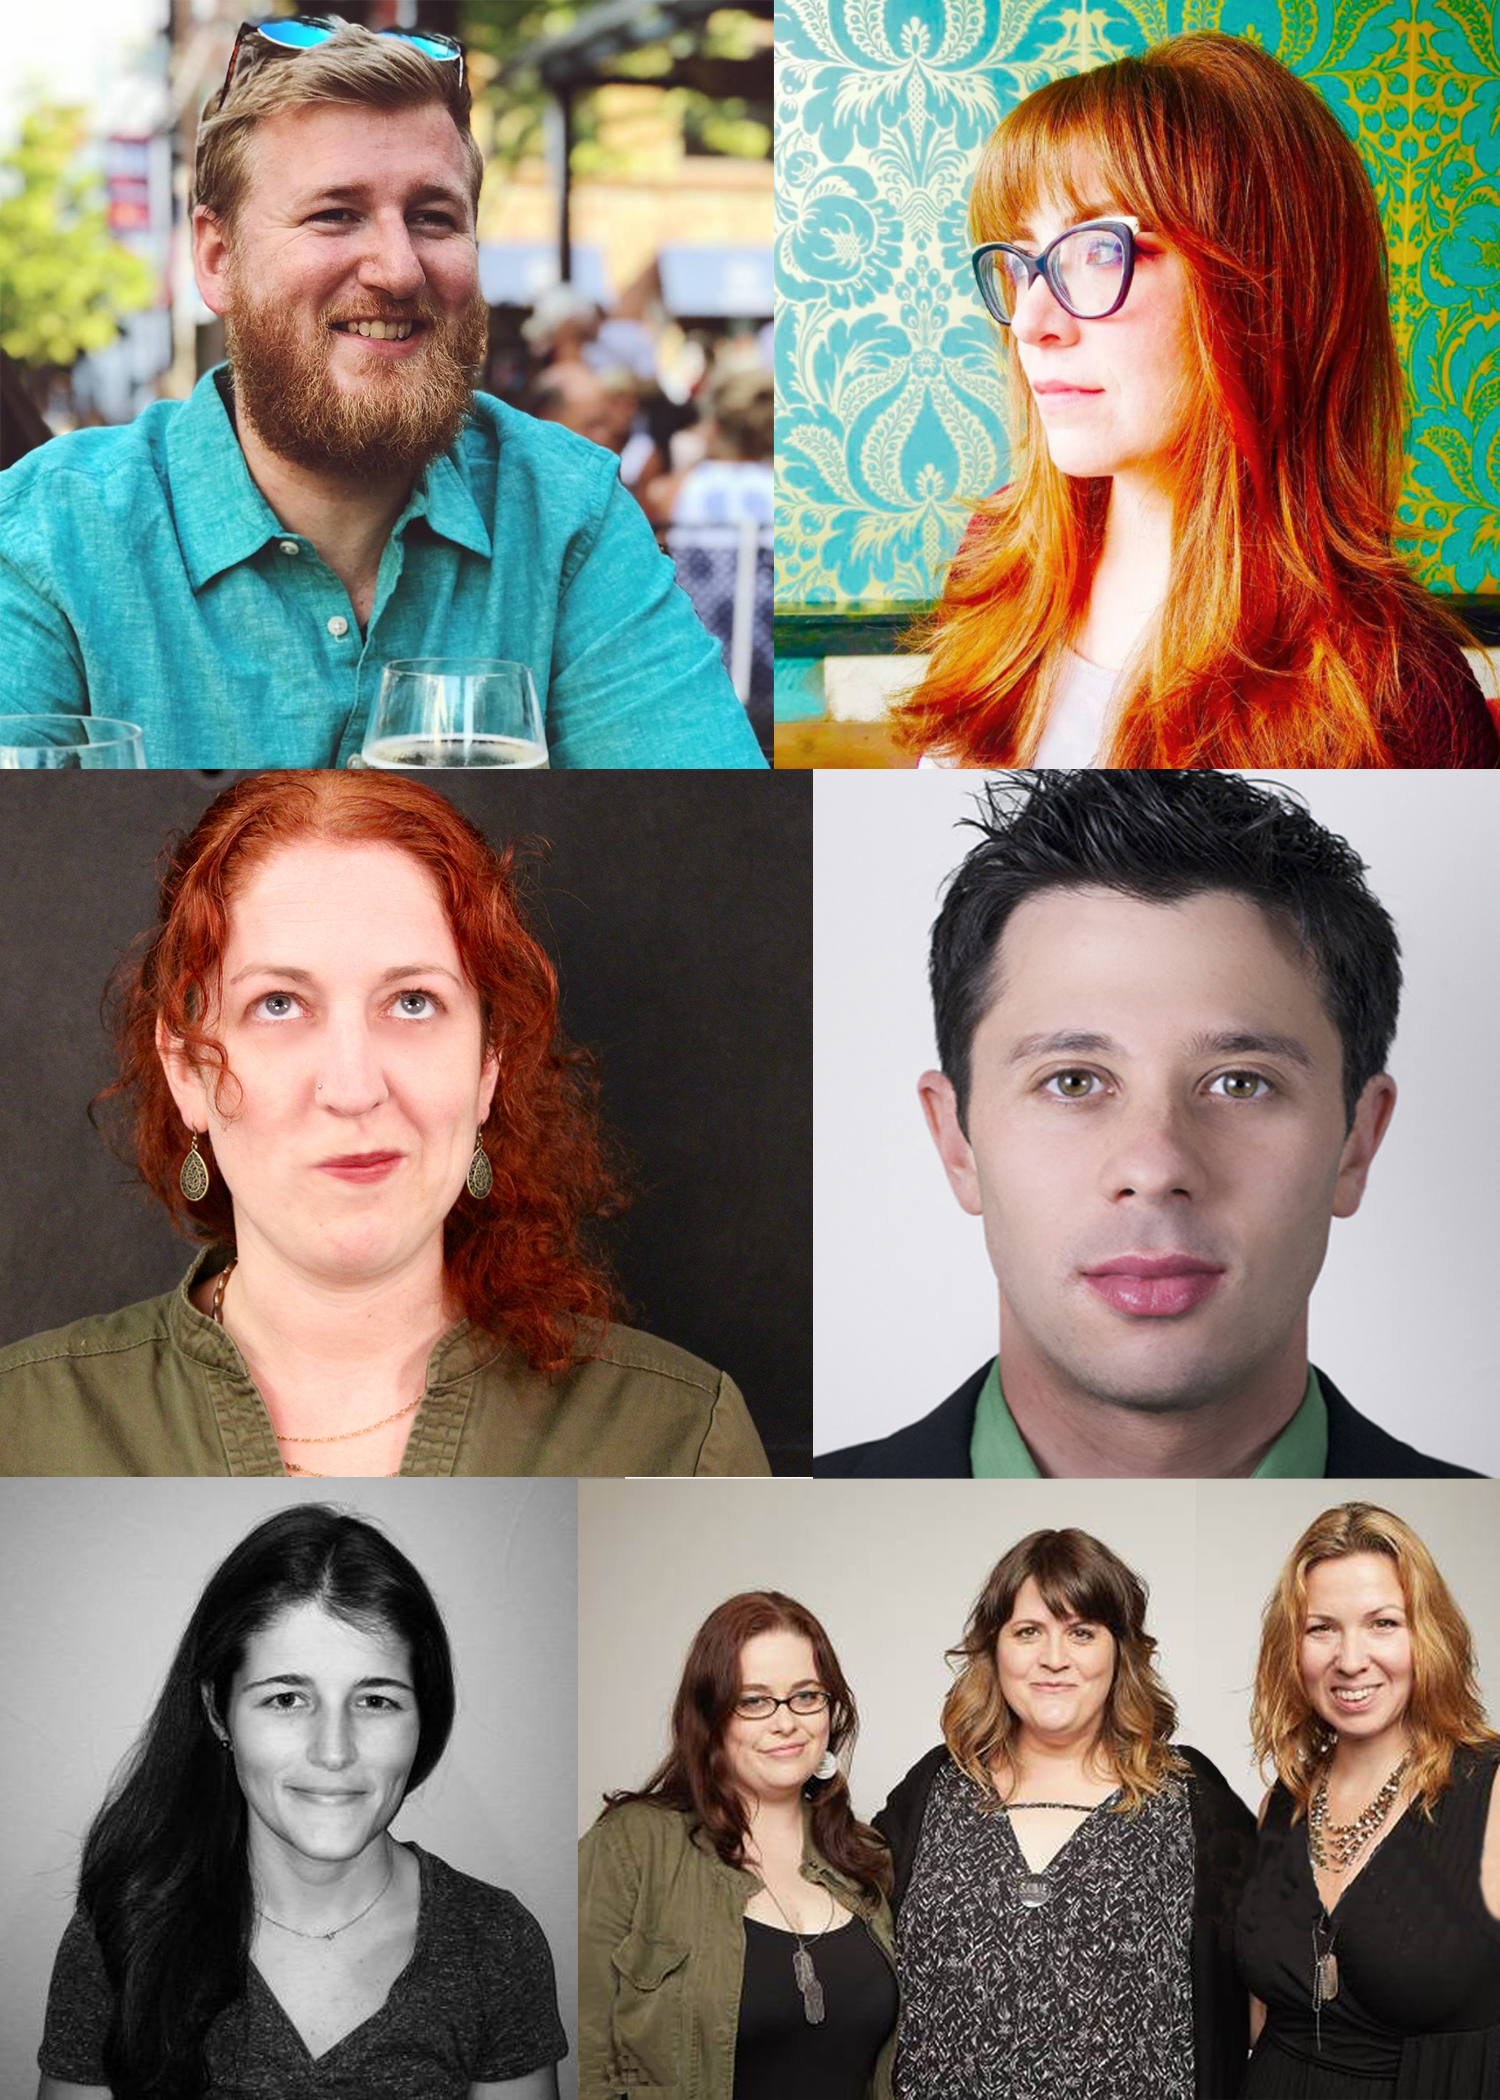 Clockwise from top left: Ben Rapson, Mia Bruno, Adam Kersh, SADIE producers Lacey Leavitt & Jennessa West and writer/director Megan Griffiths, Katherine Boehrer and Anna Feder .